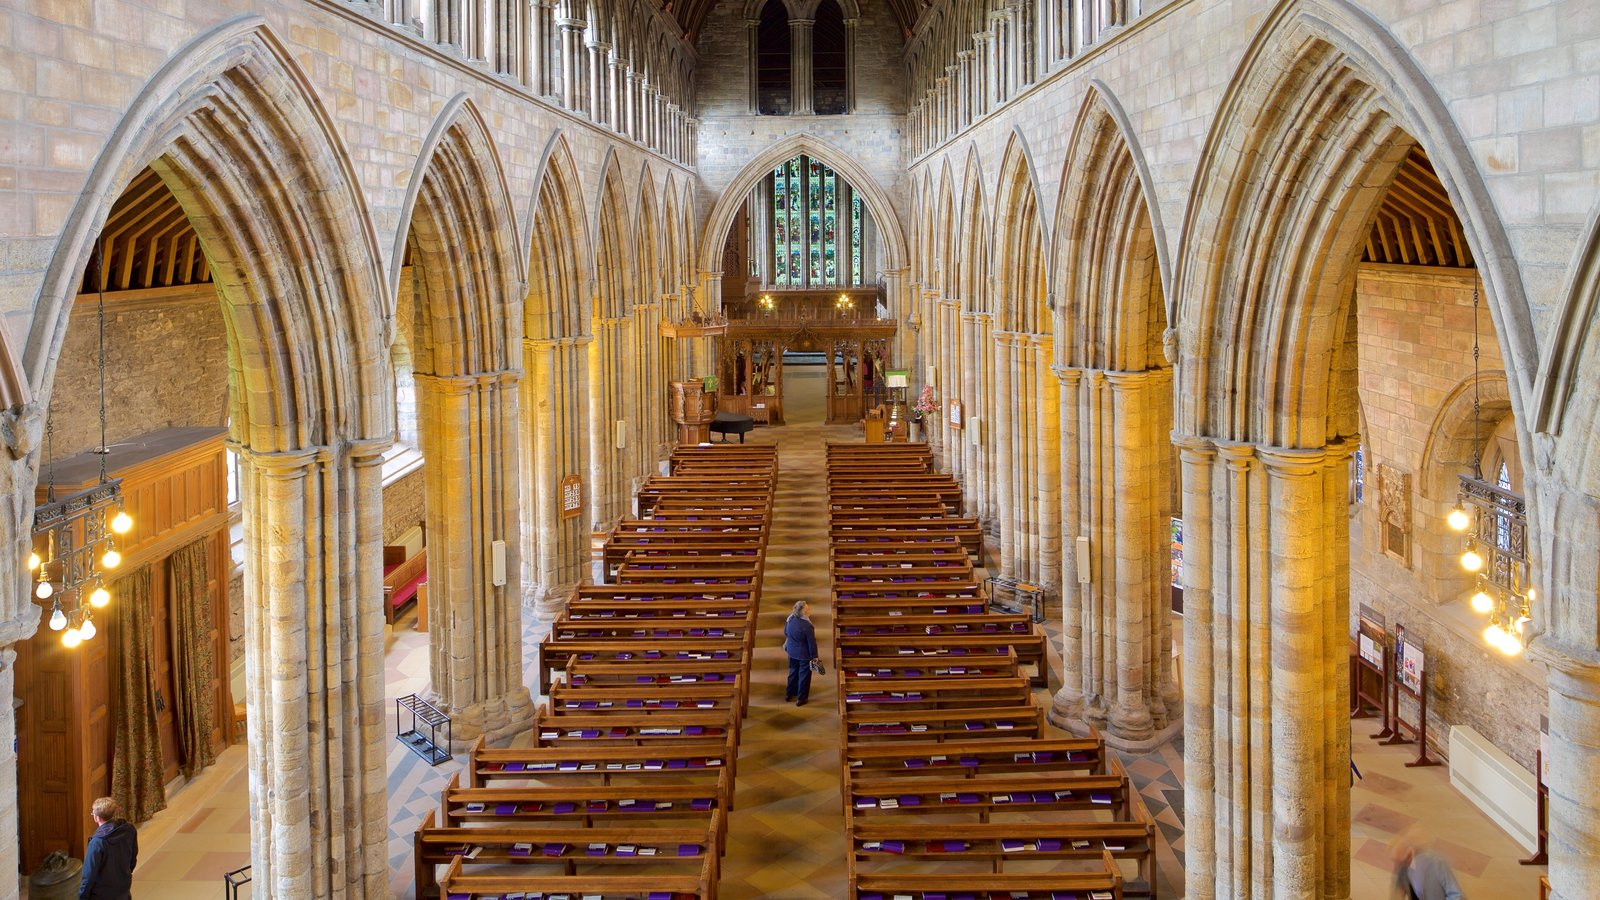 Dunblane Cathedral featuring religious aspects, interior views and a church or cathedral